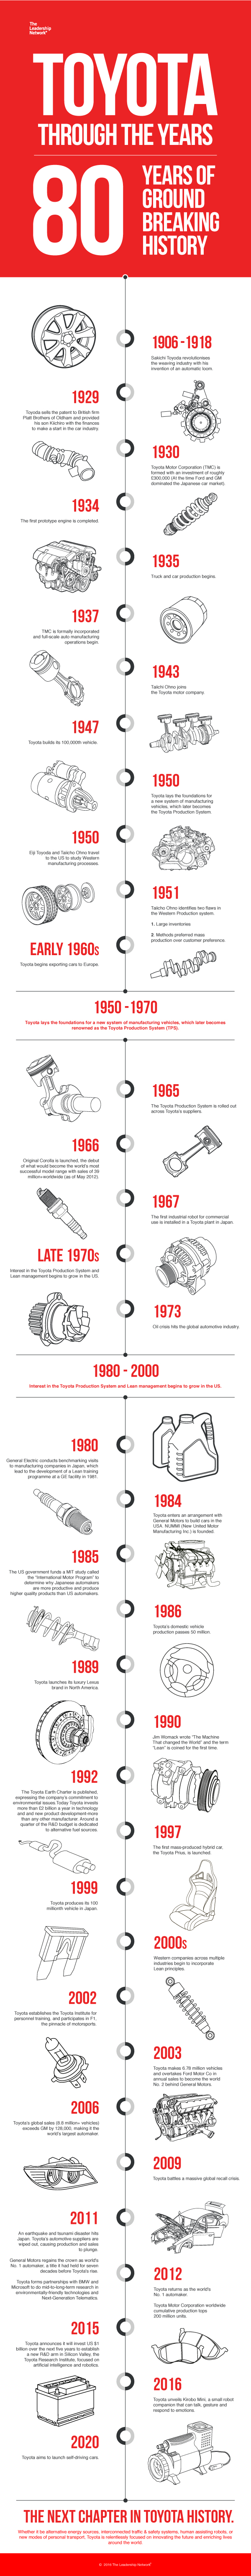 Toyota: 80 Ground-Breaking Years of History